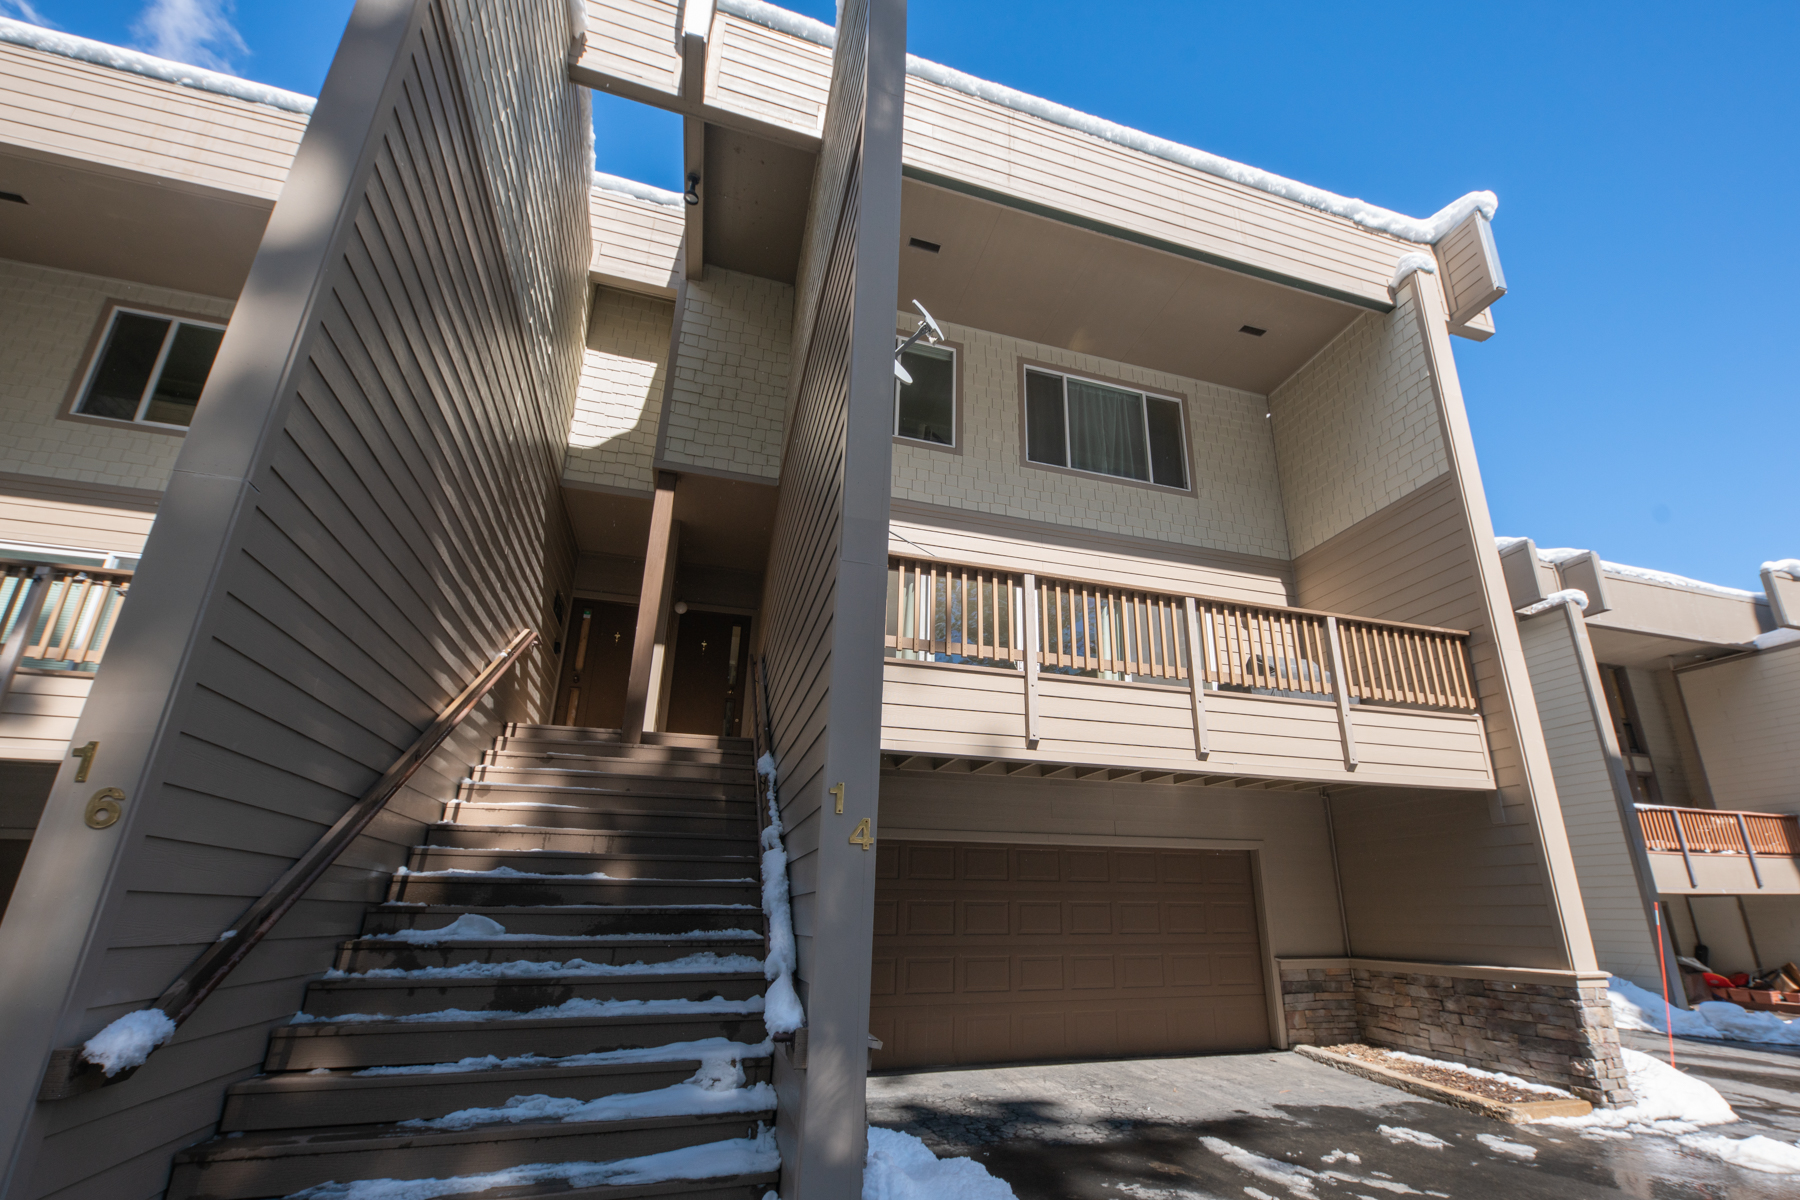 Additional photo for property listing at Village Center Condo by Beach 759 Mays Boulevard #14 Incline Village, Nevada 89451 United States